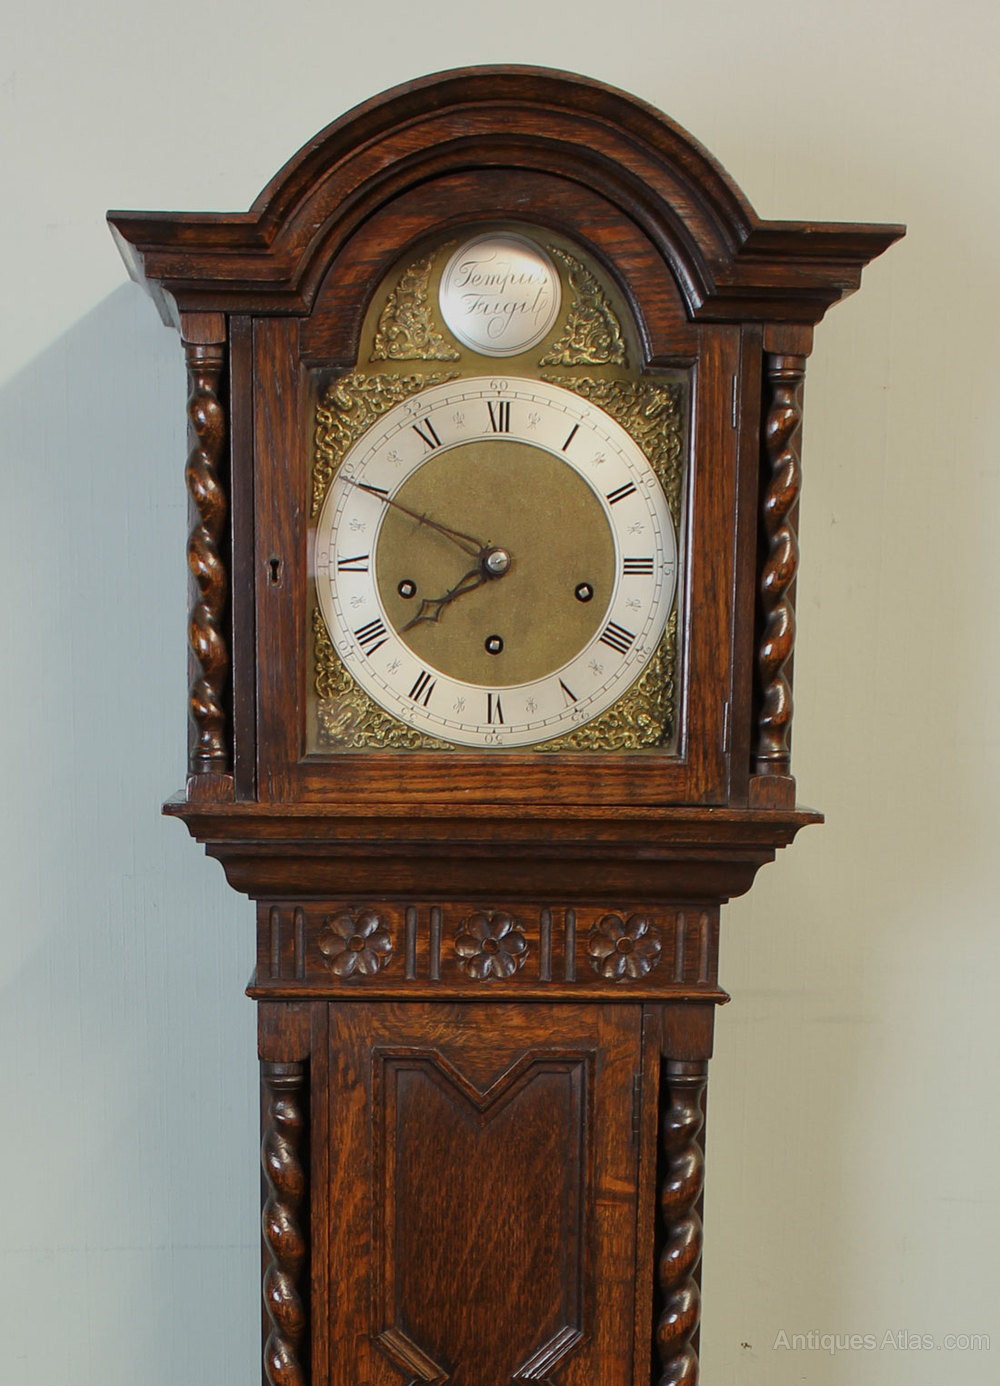 Antiques Atlas - Antique Westminster Chime Grandmother Clock,